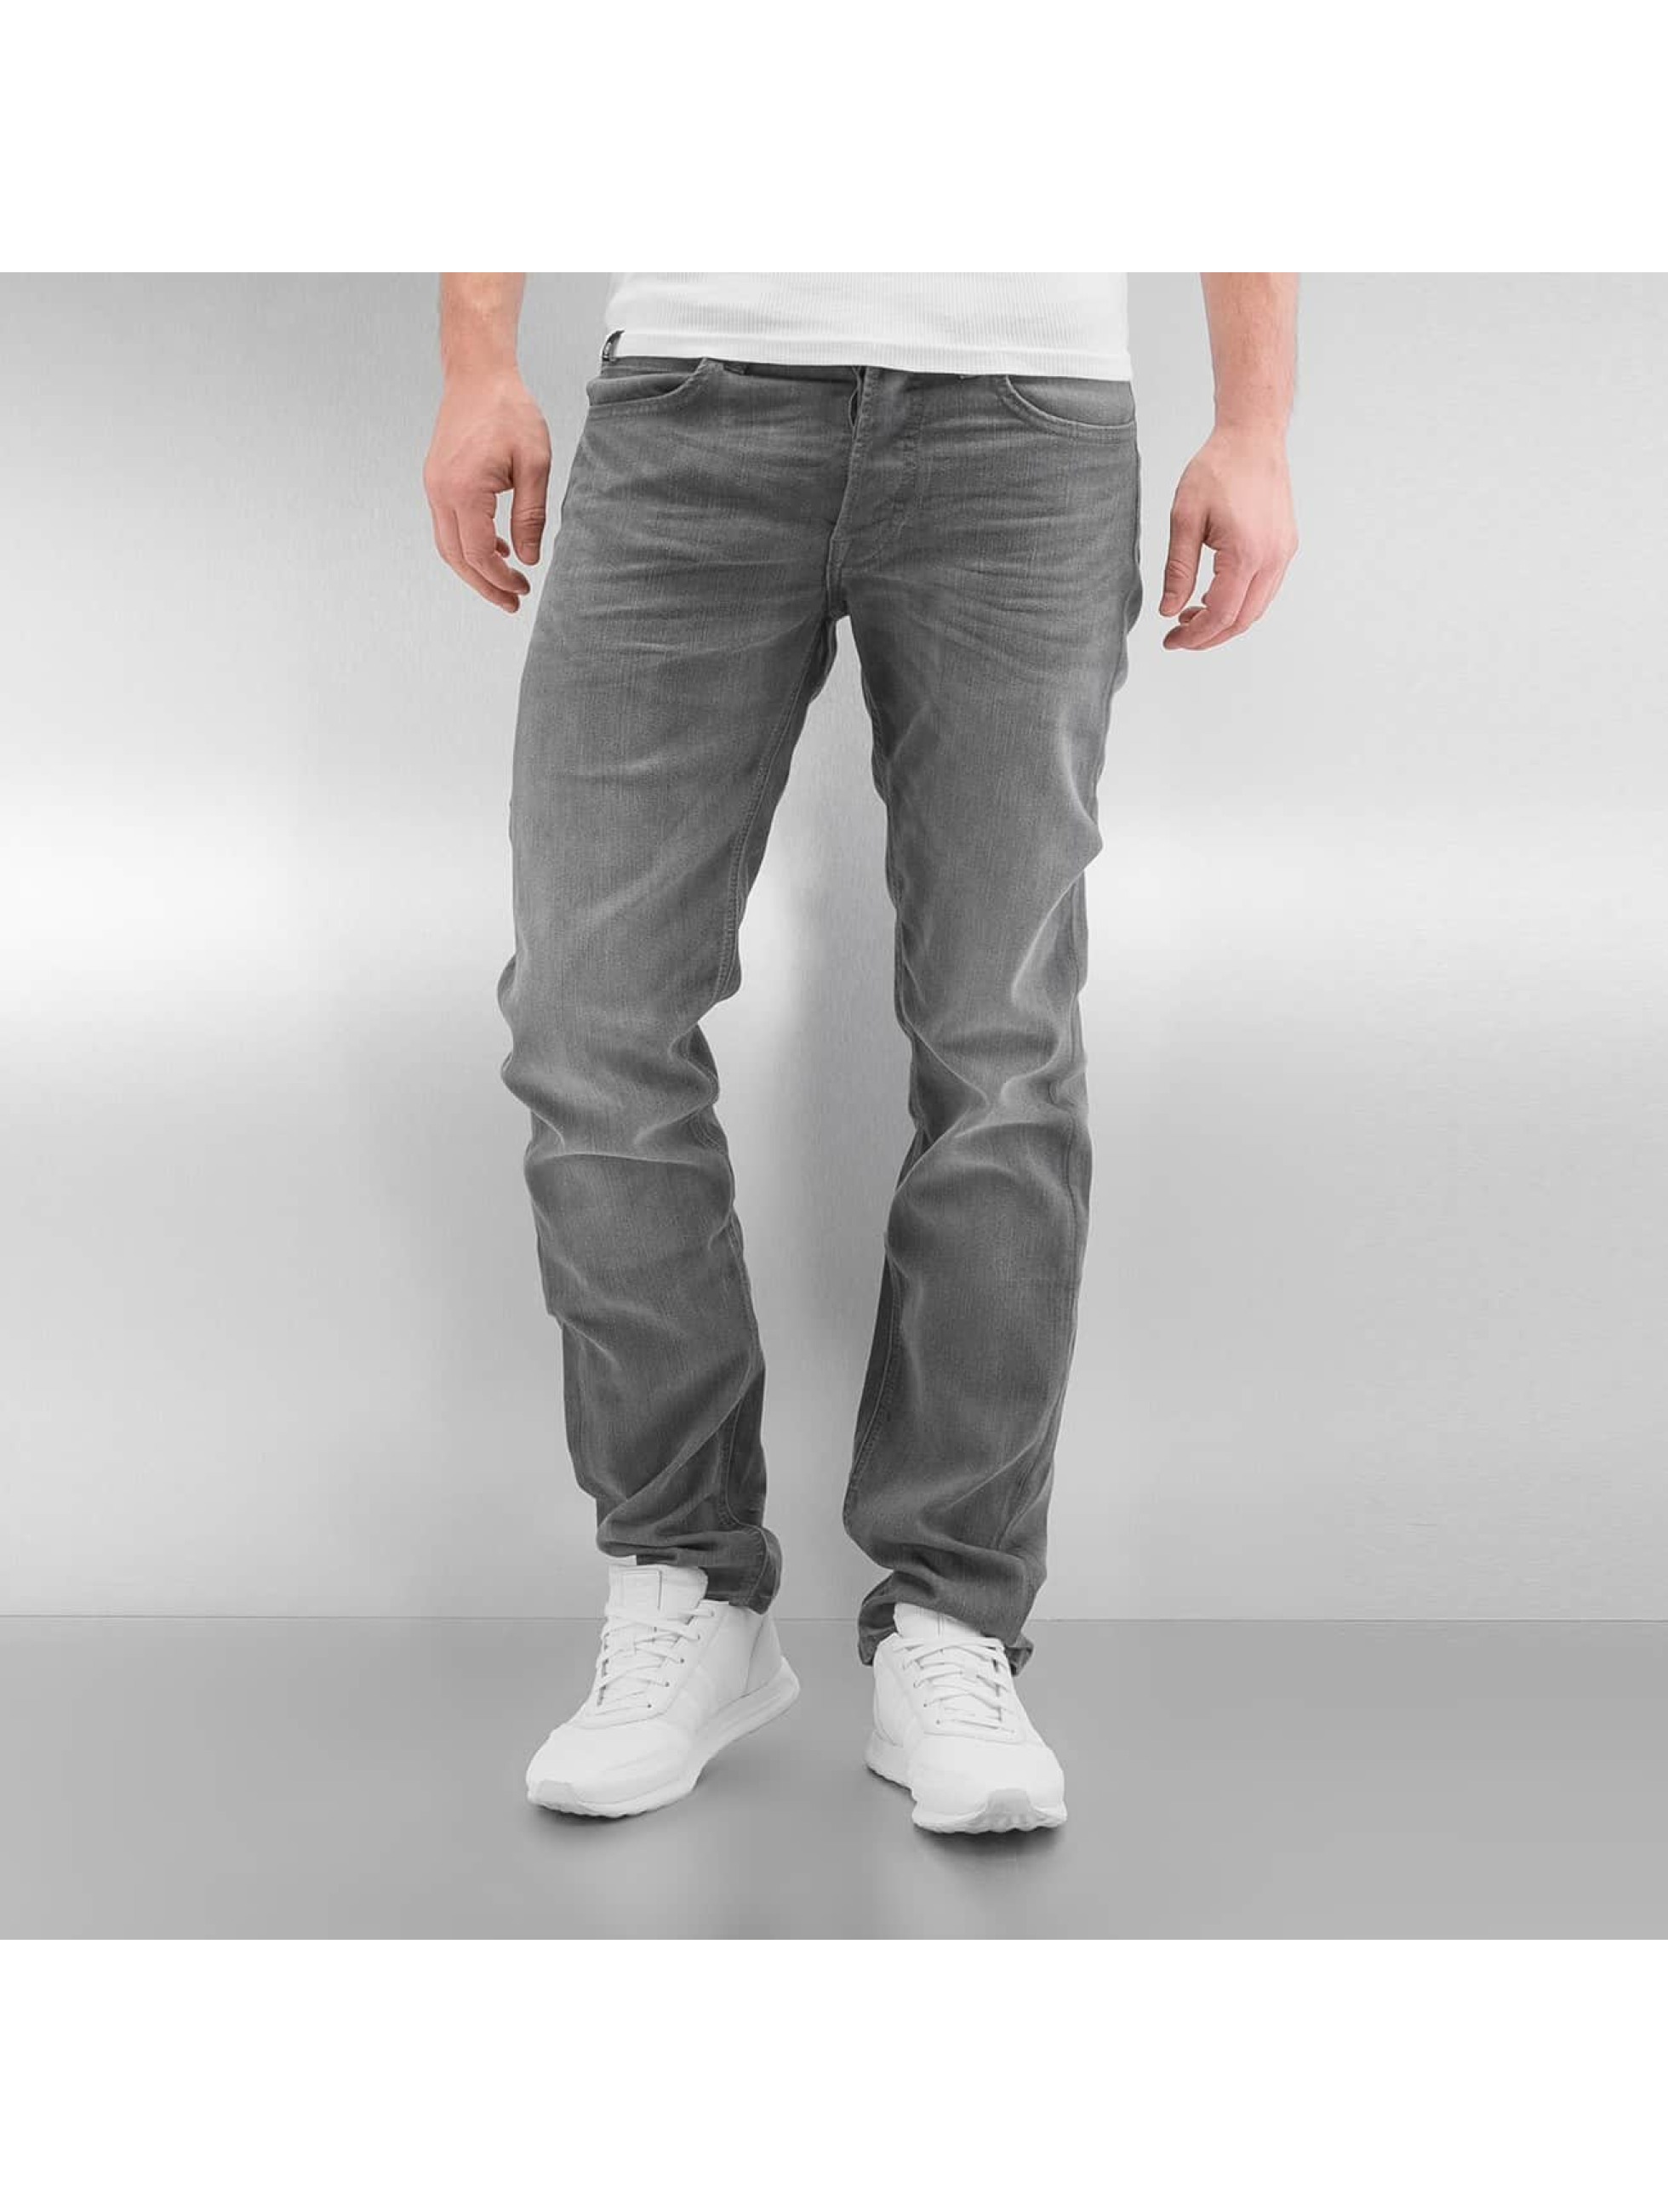 Lee Slim Fit Jeans Daren gray